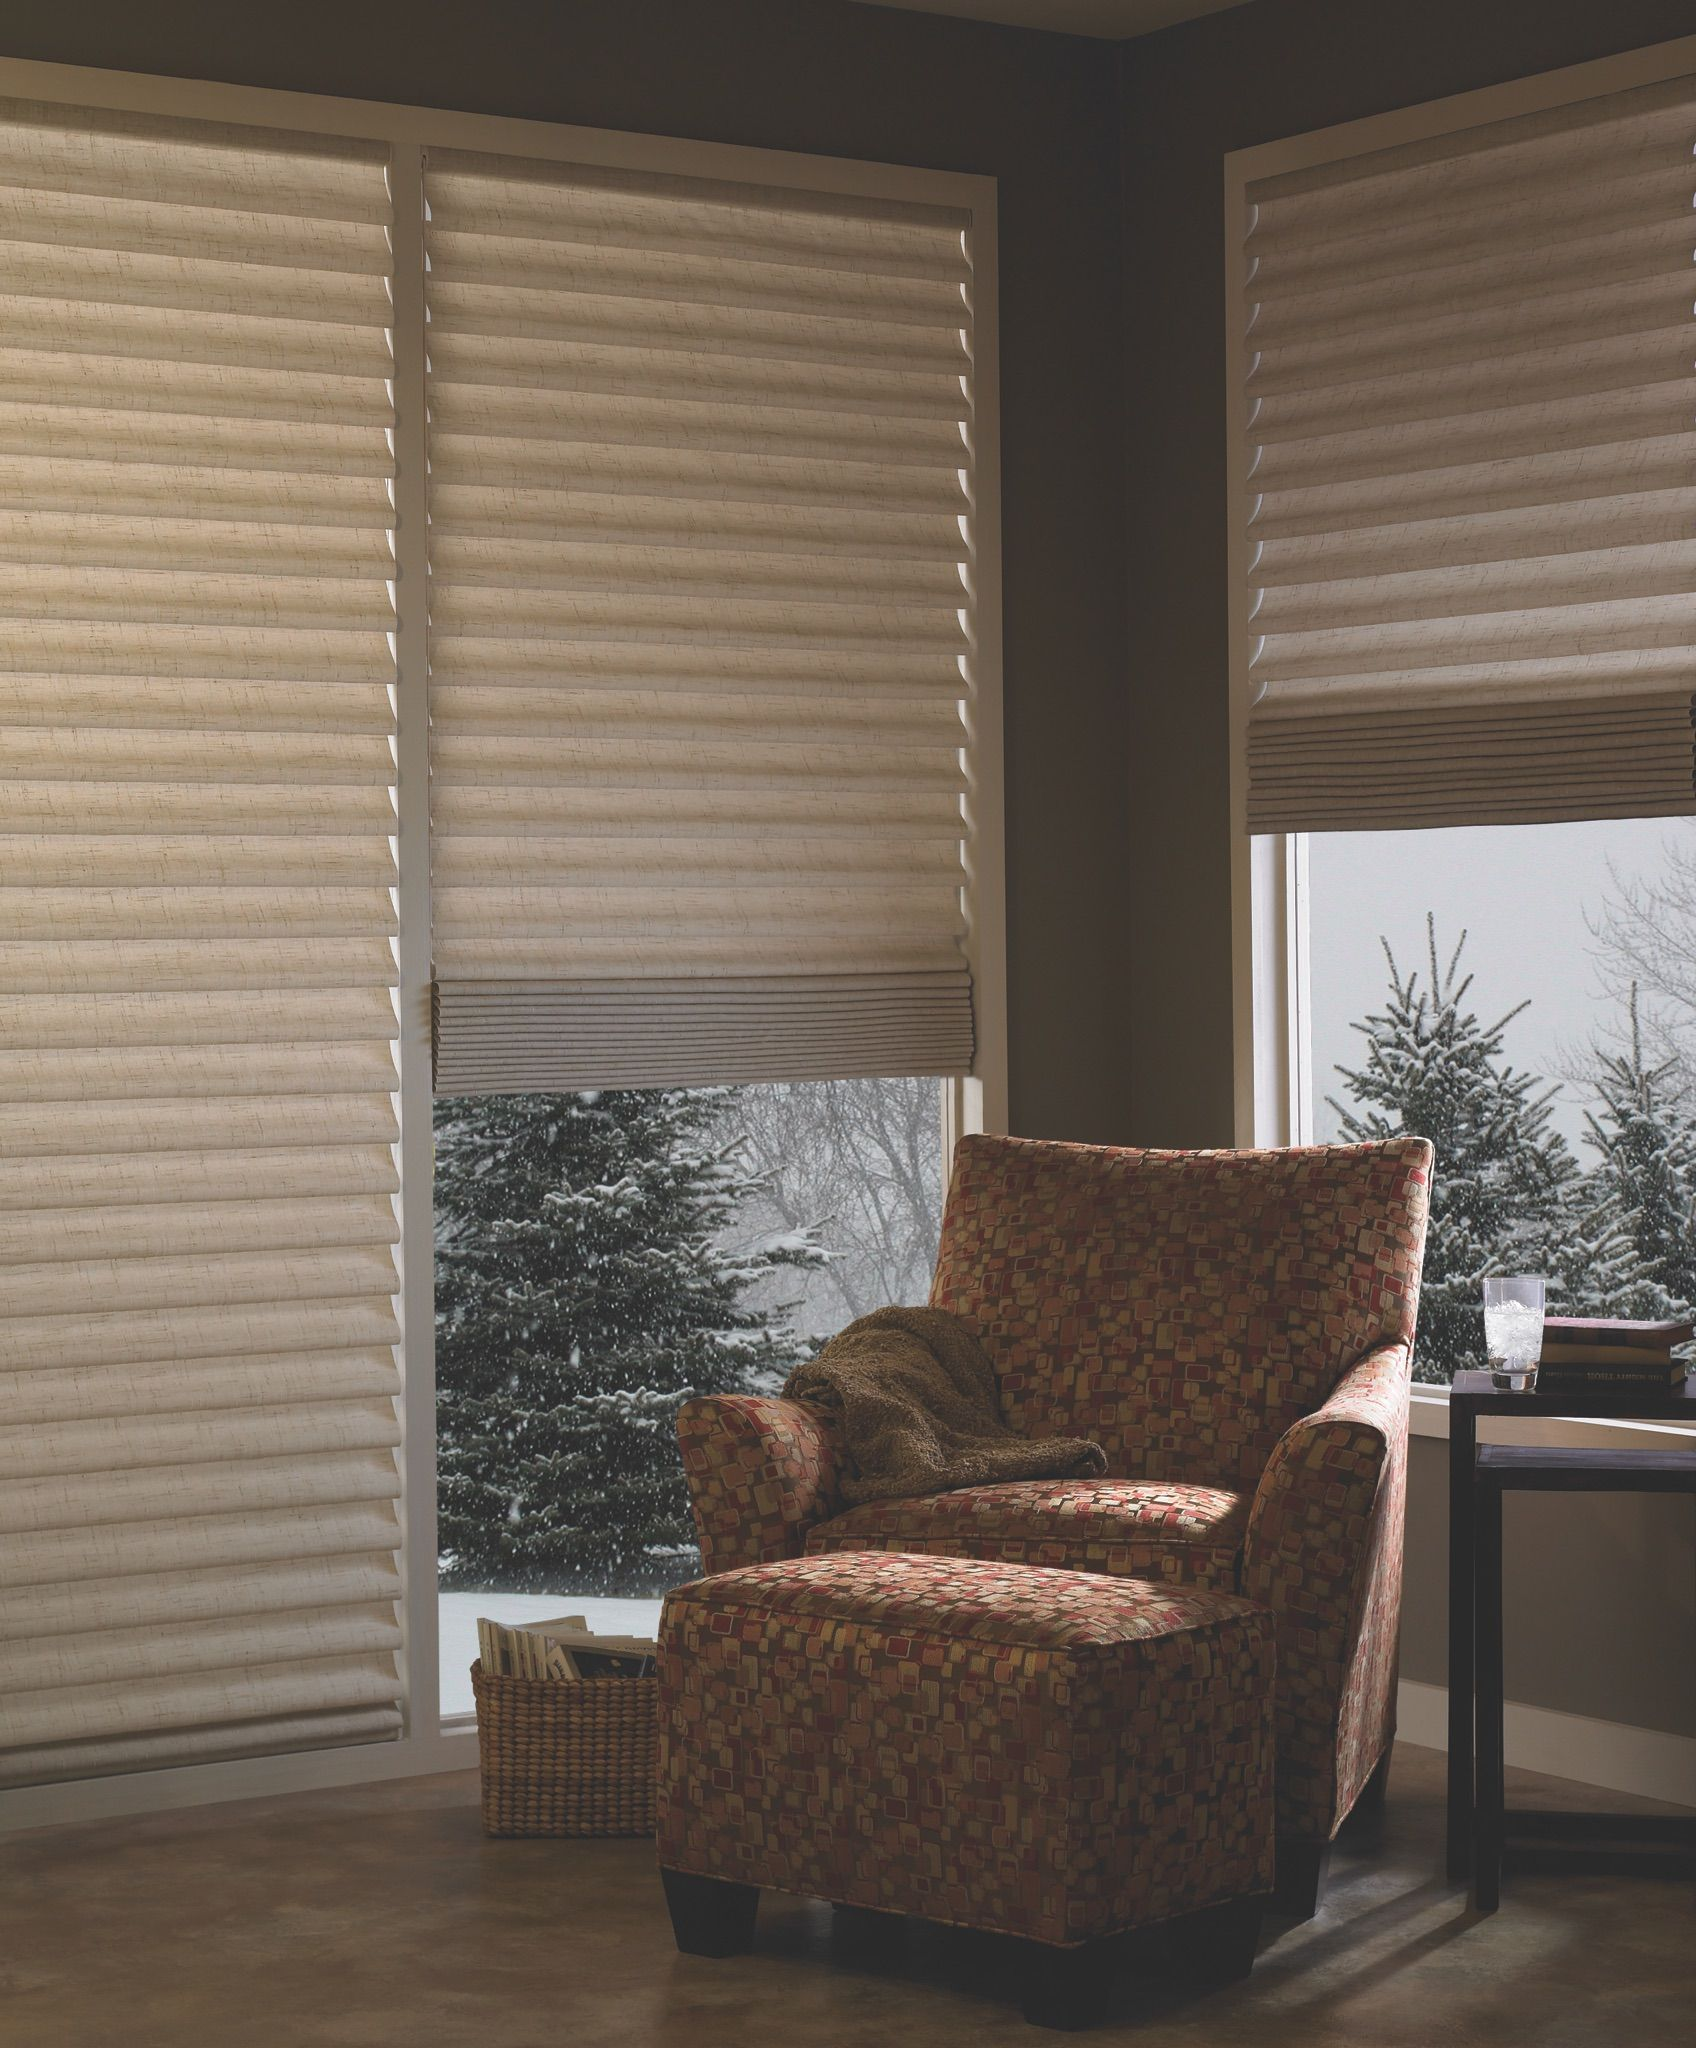 Hunter Douglas Vignette Roman Shades Offer Fresh Contemporary Fabrics And Colors In Many Design Options Modern Vertical Blinds Blinds Honeycomb Shades